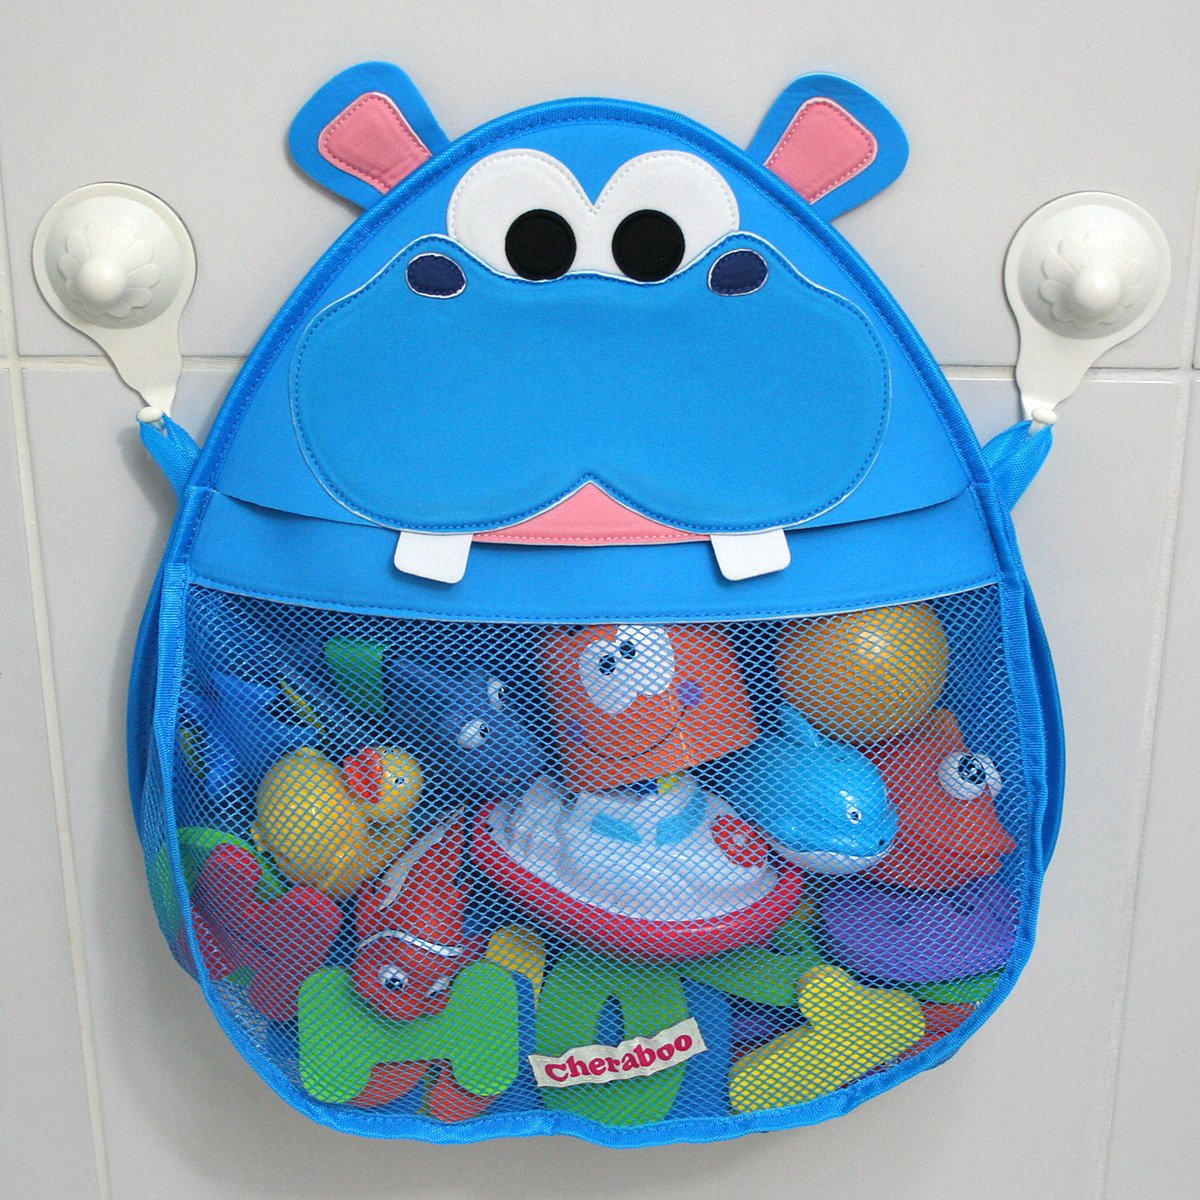 Amazon.com : Hurley Hippo Bath Toy Organizer (Blue) : Baby